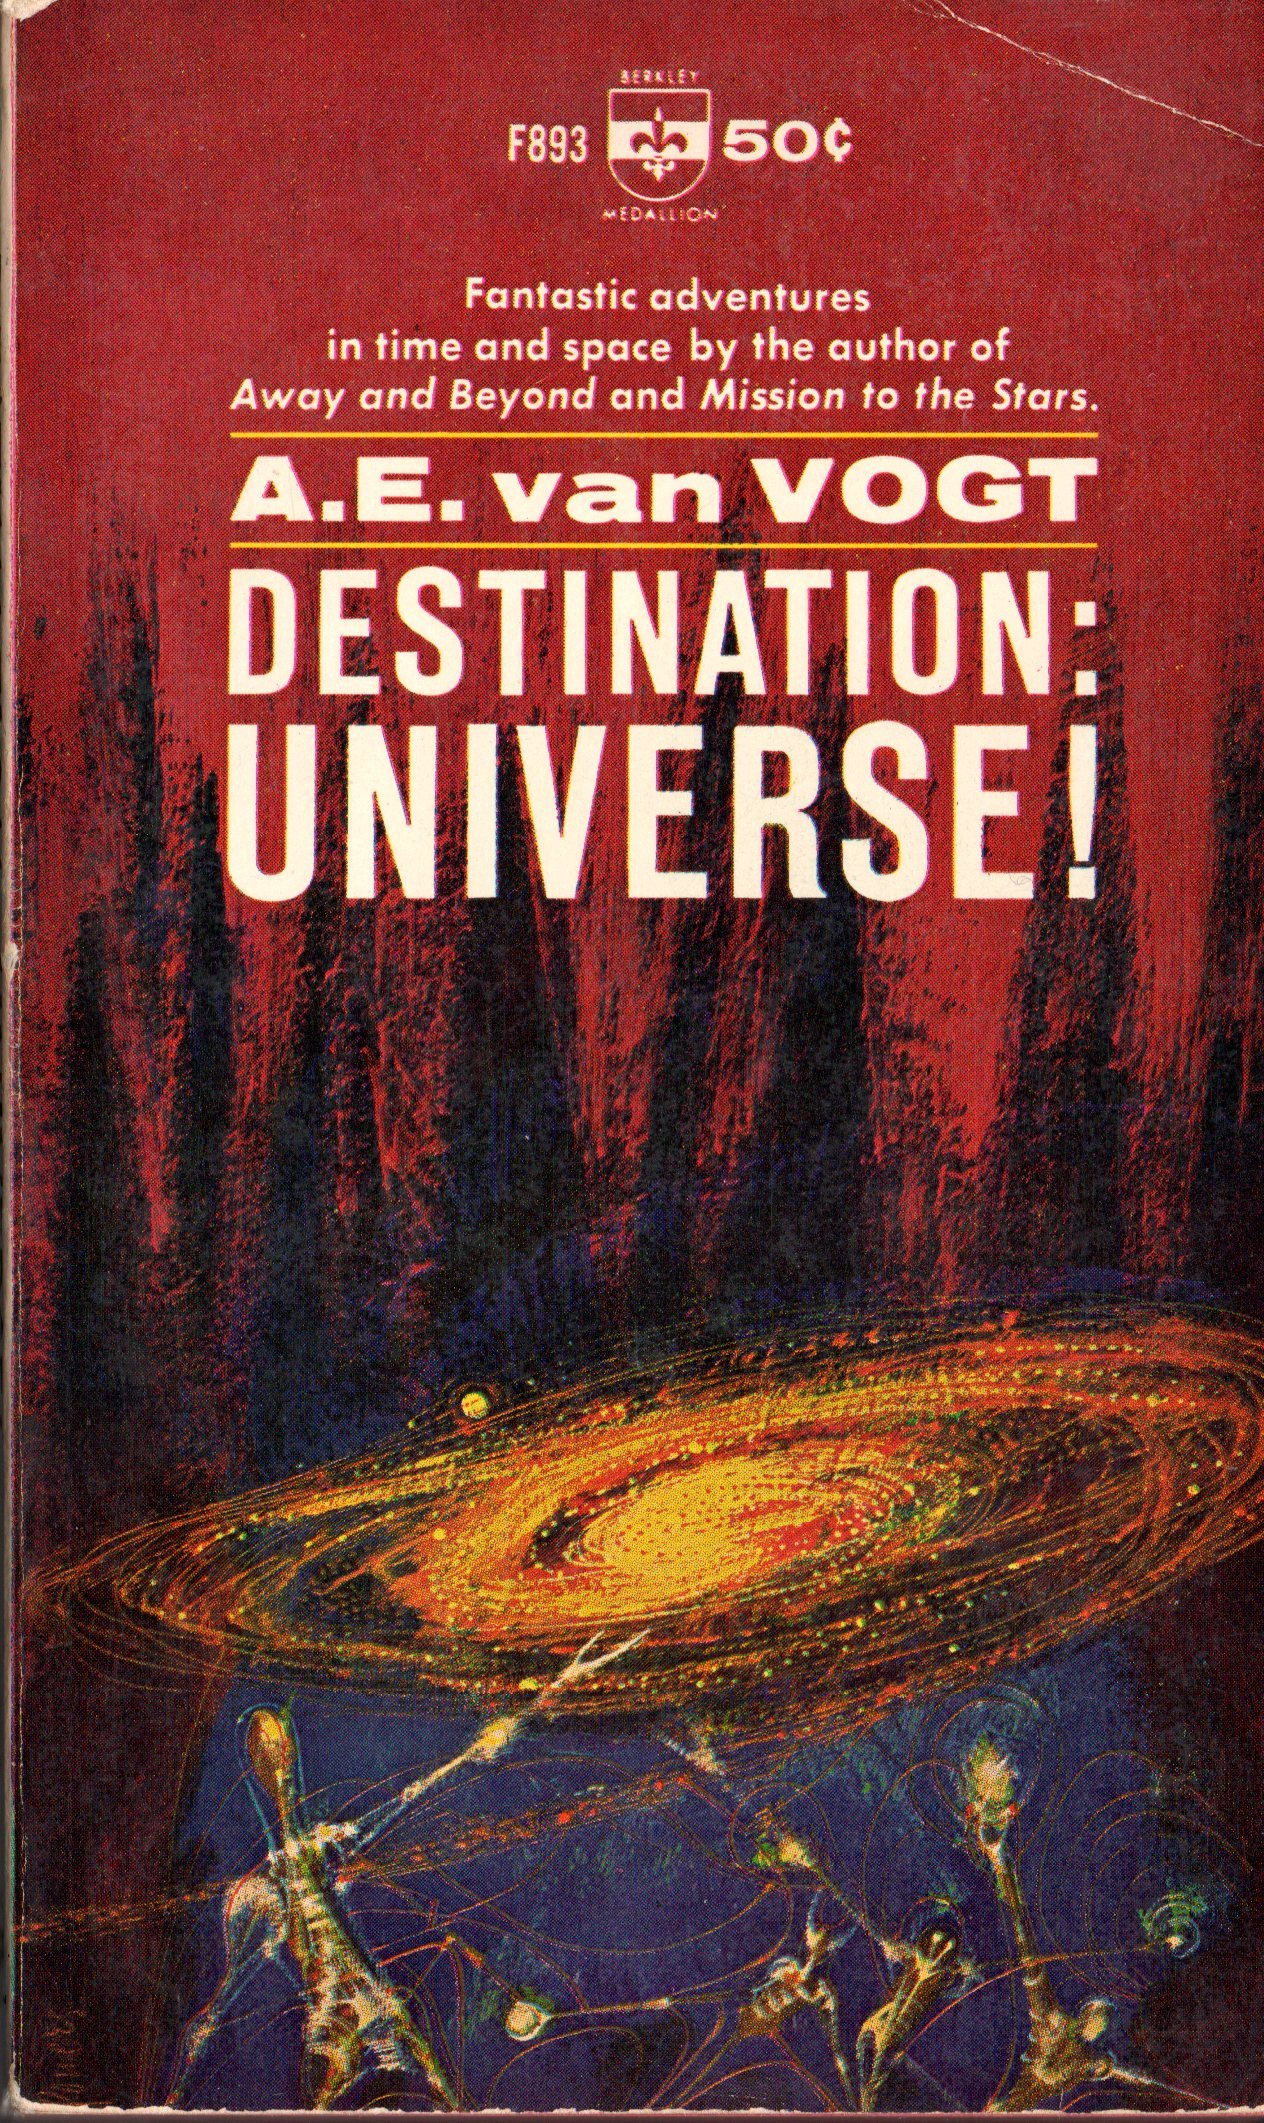 Destination: Universe!, can Vogt, A.E.